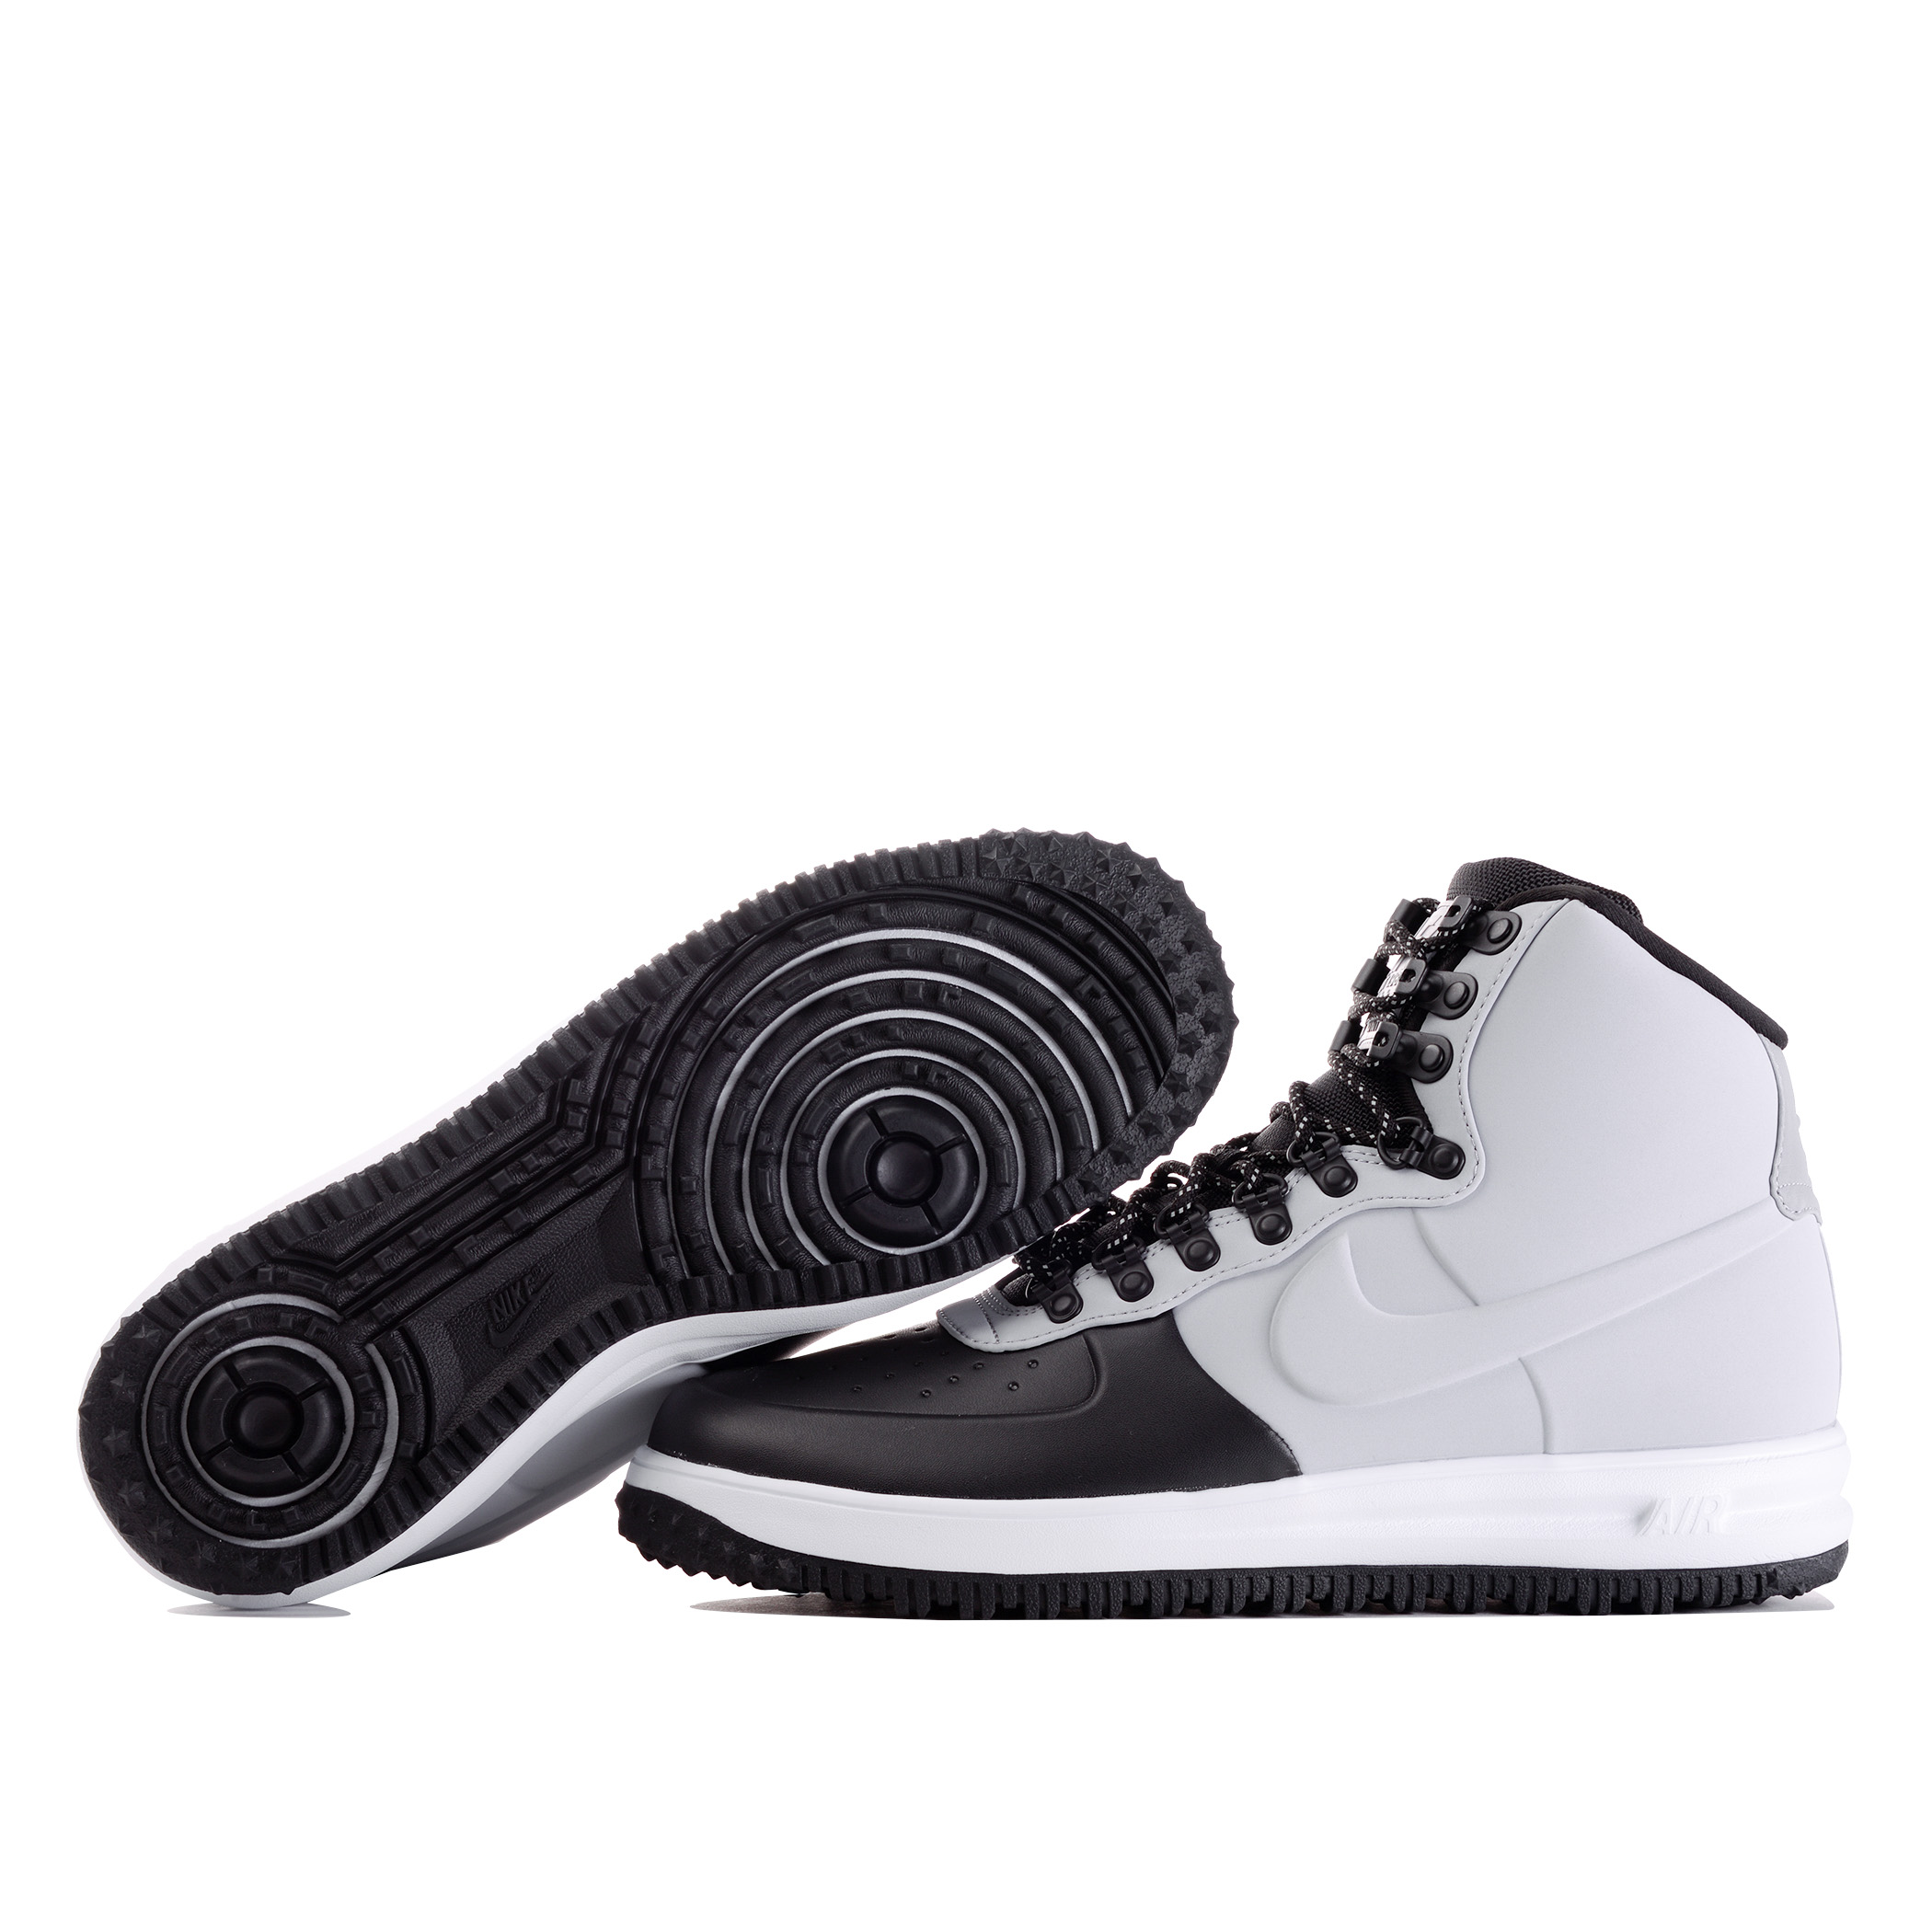 Ботинки Lunar Force DuckBoot от Nike (BQ7930 002) продажа